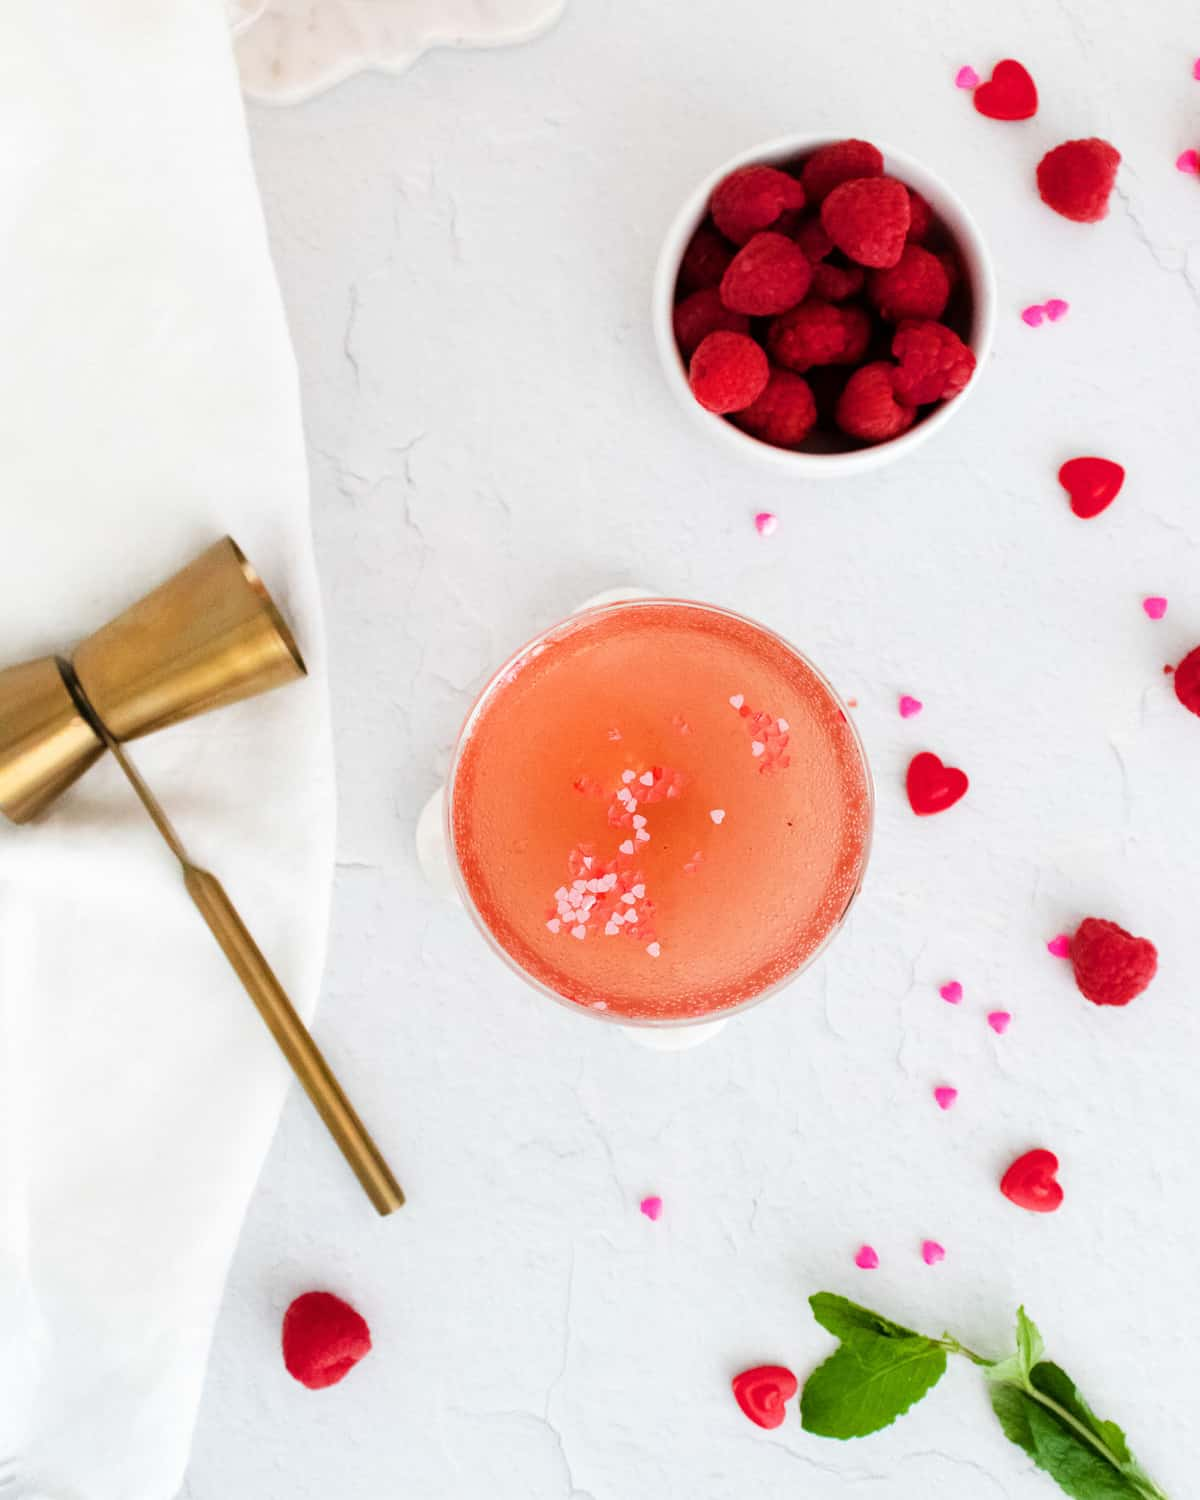 Overhead view of a light pink cocktail, raspberries scattered around.